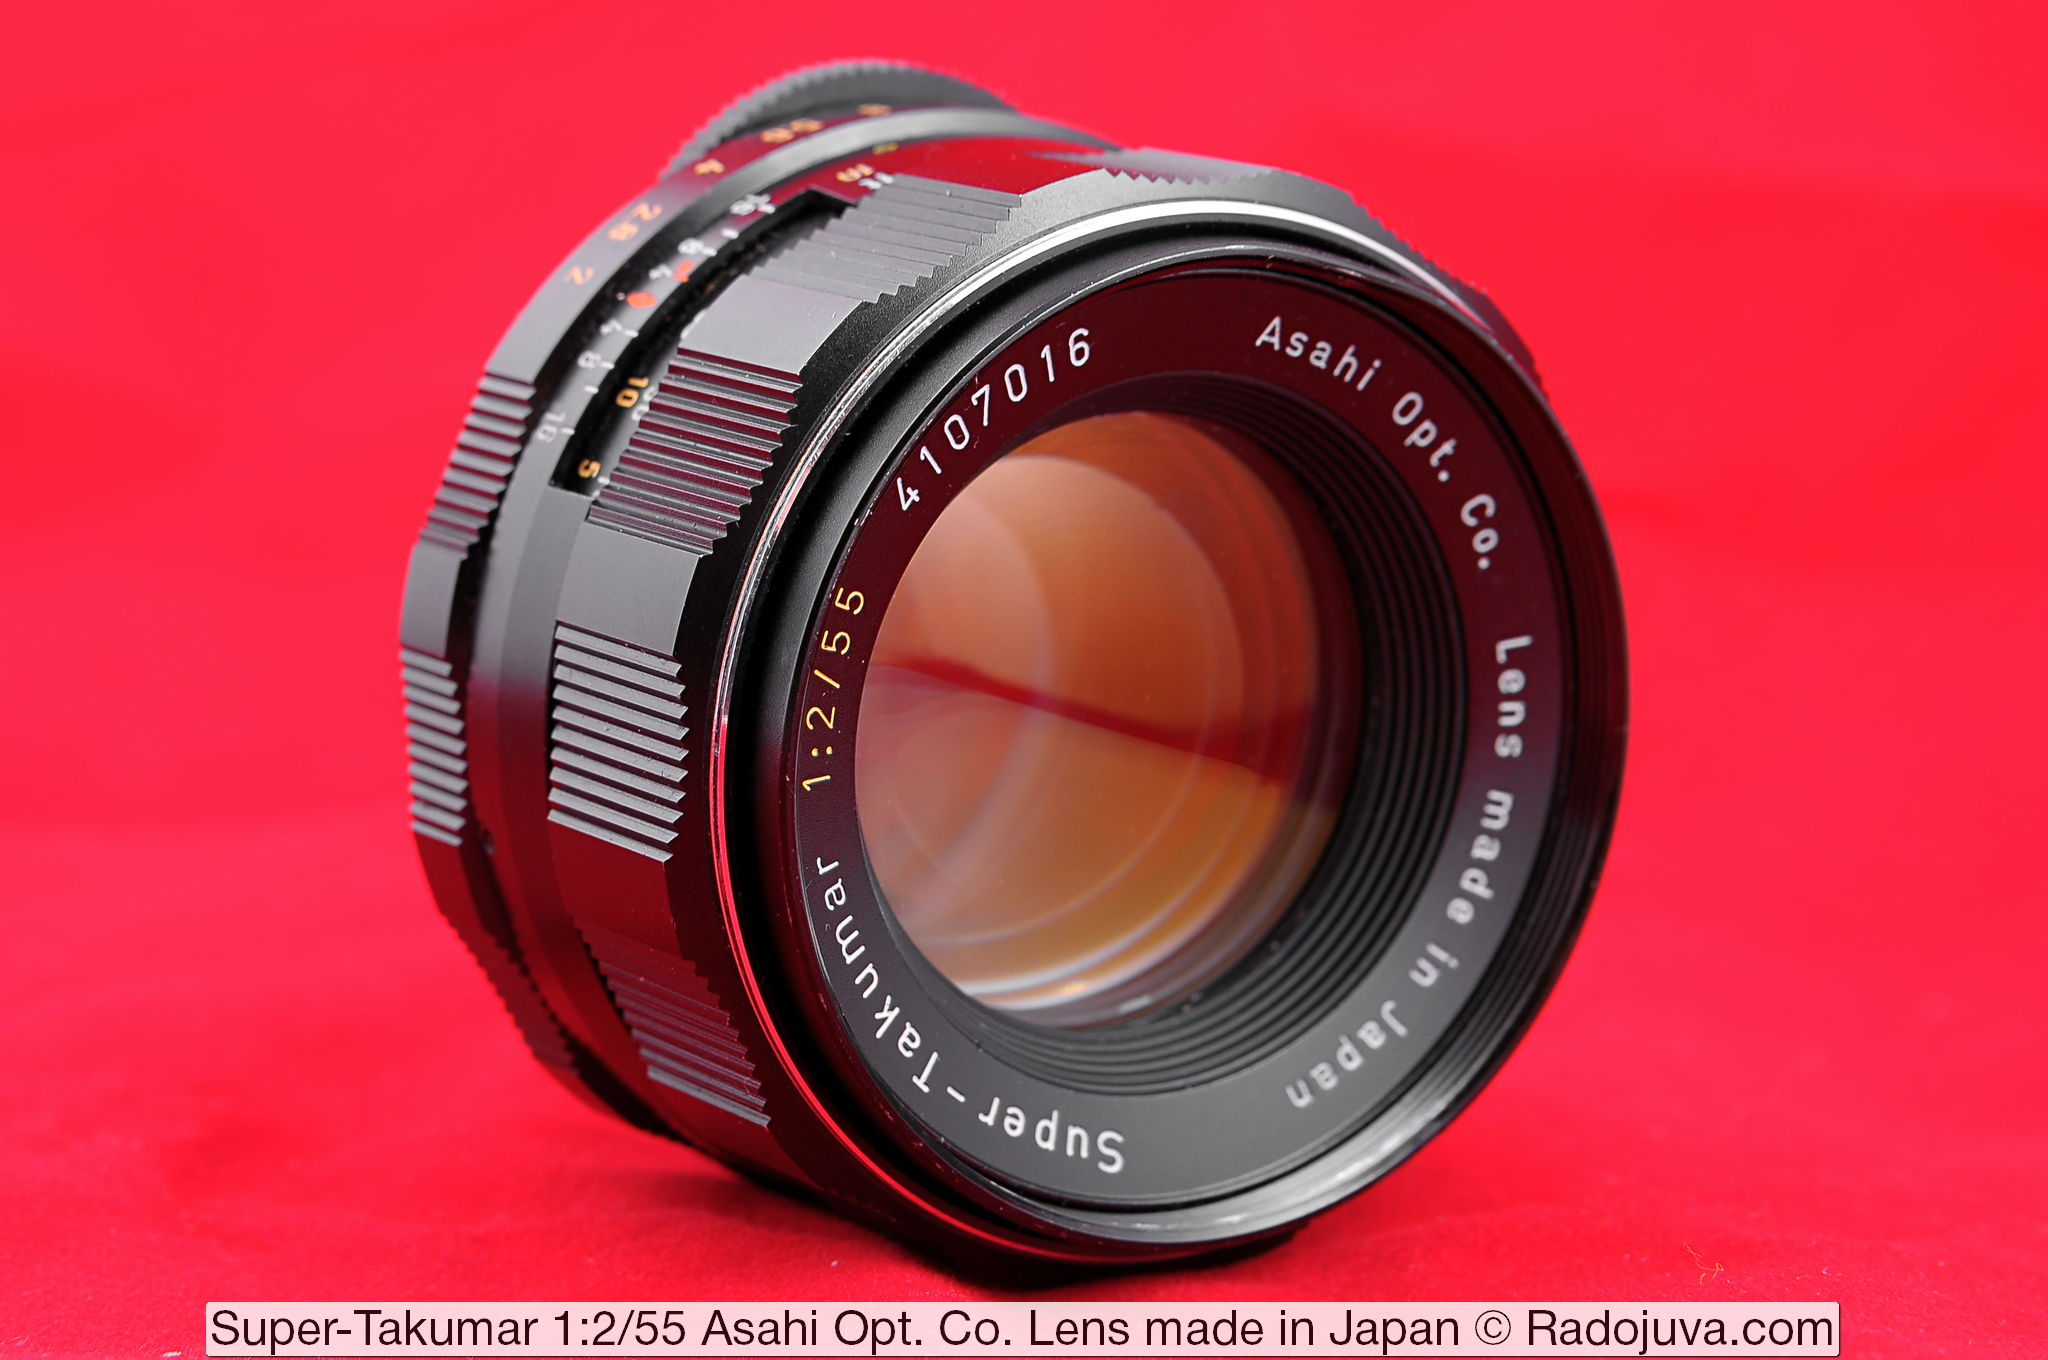 Super-Takumar 1:2/55 Asahi Opt. Co. Lens made in Japan